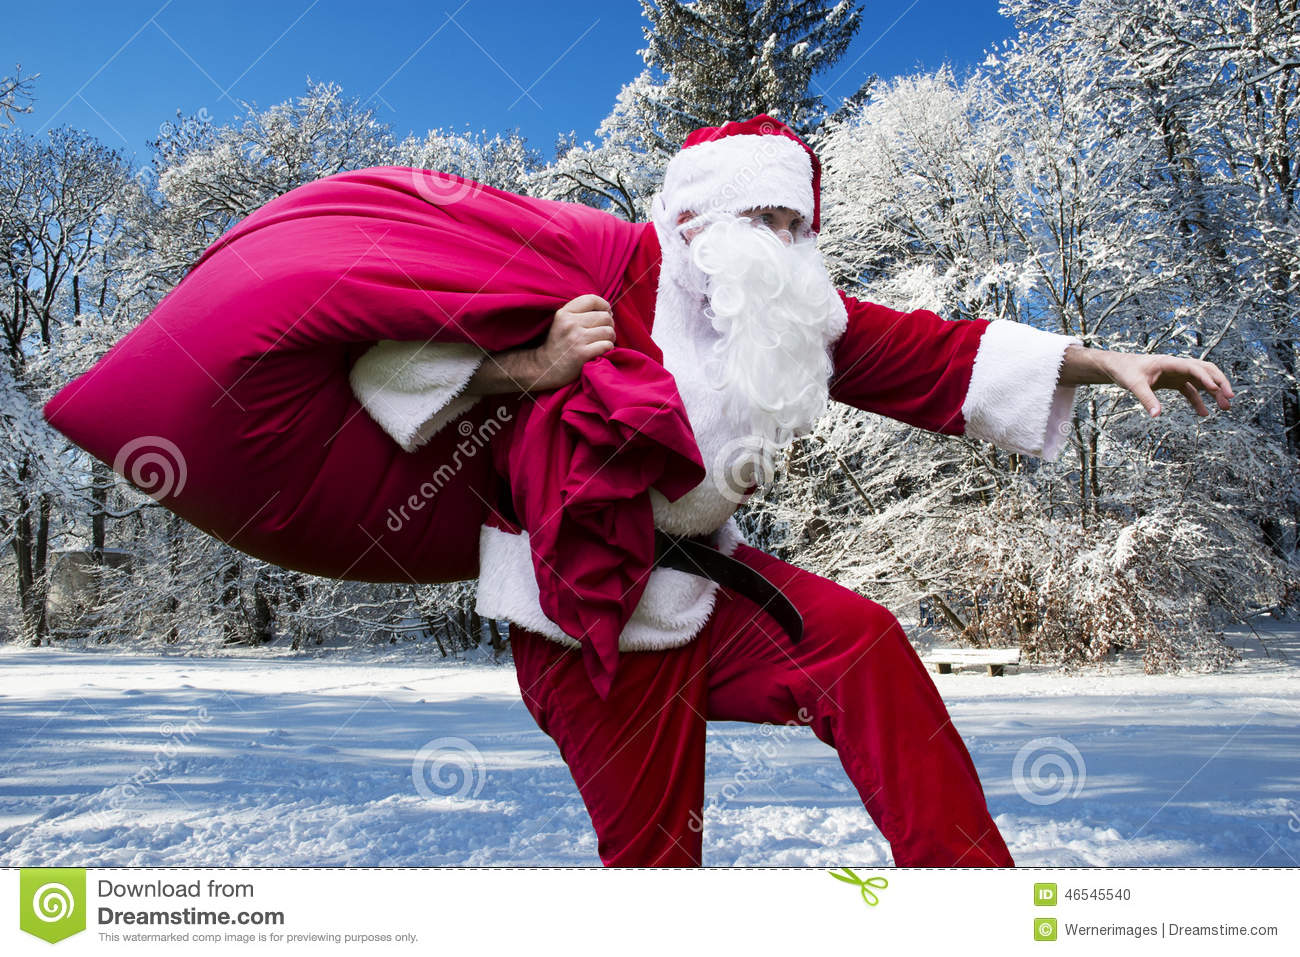 Santa Claus In The Snow Stock Photo. Image Of Christmas